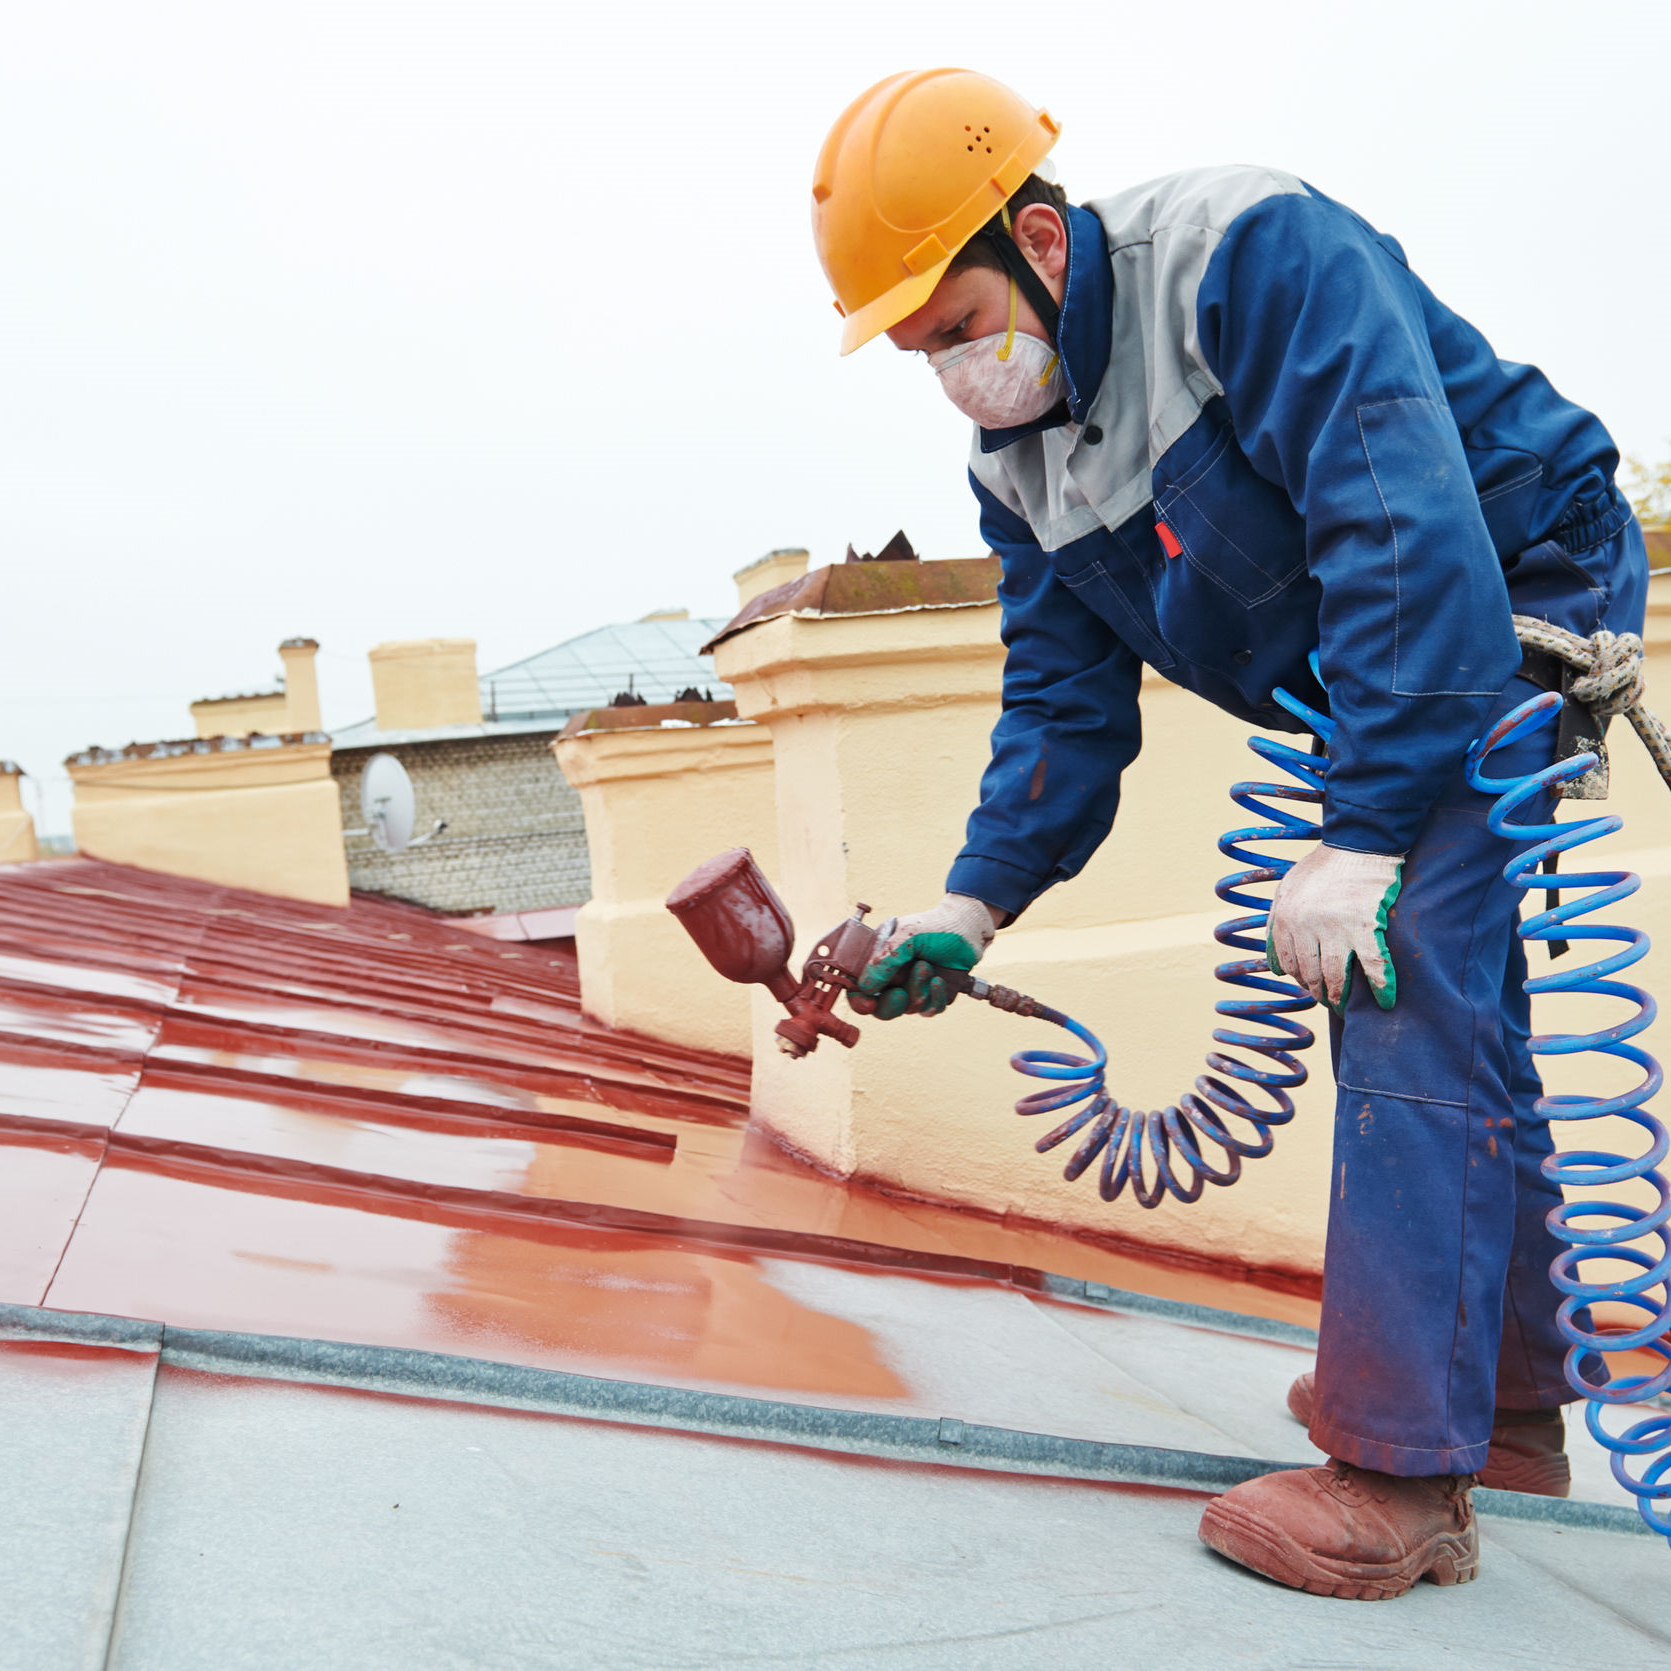 A roofer applying elastomeric coating to a metal roof.